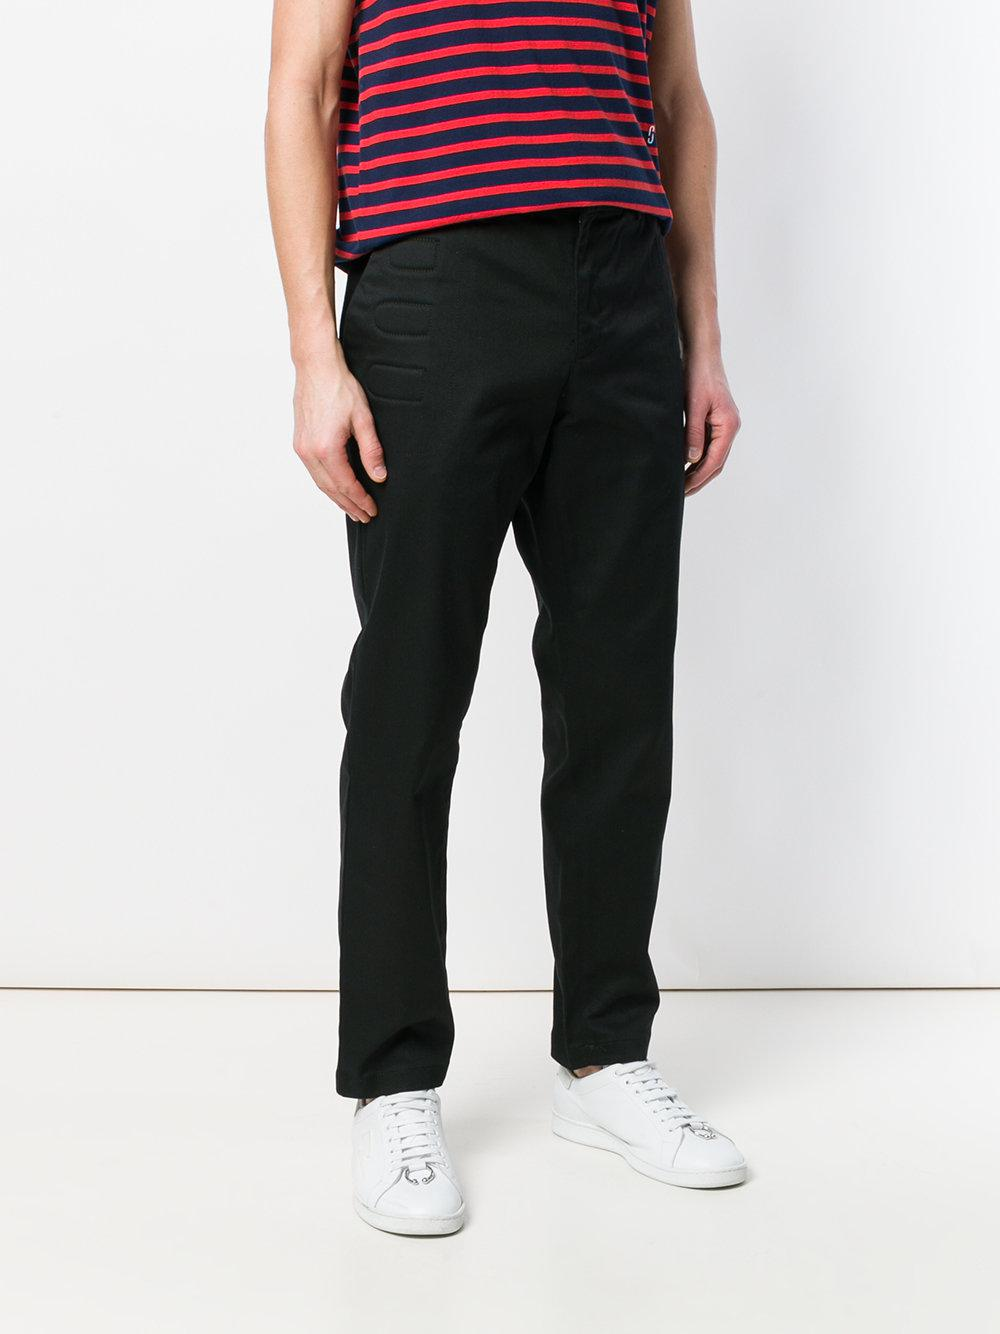 Moschino Cotton Regular Chino Trousers in Black for Men